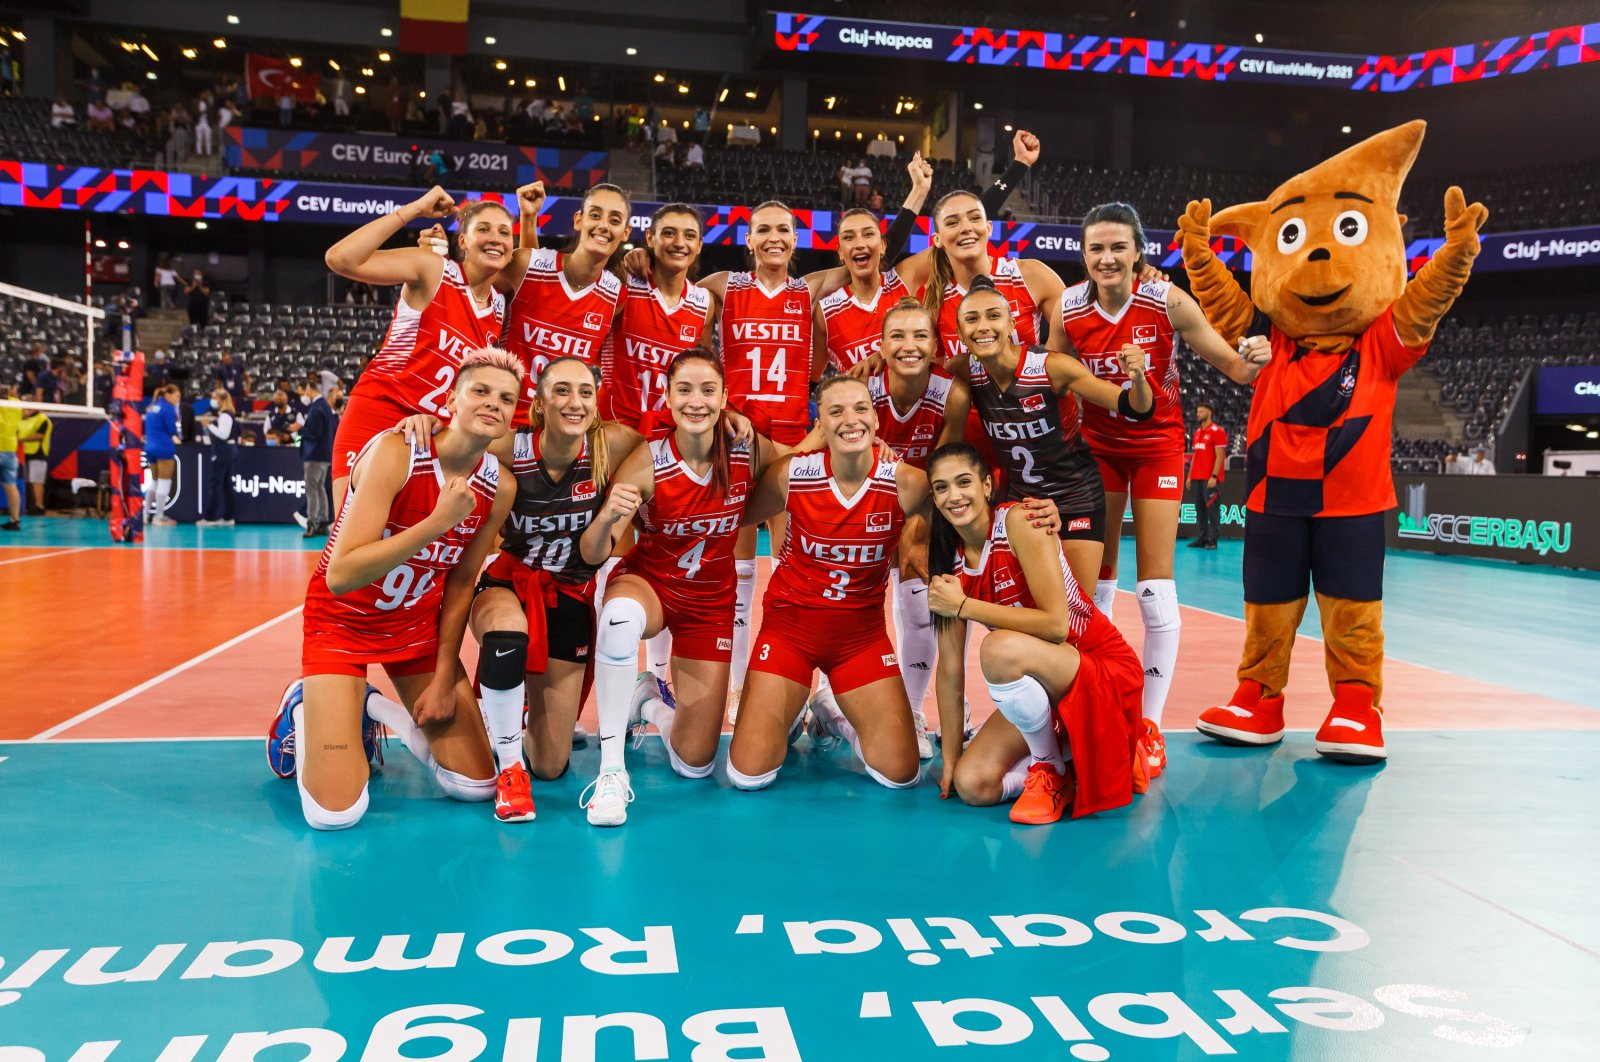 The Turkish women's volleyball team celebrates their win against Ukraine following the CEV European Volleyball Championship Group D match in Cluj Napoca, Romania, Aug. 20, 2021. (Turkish Volleyball Federation via AA)